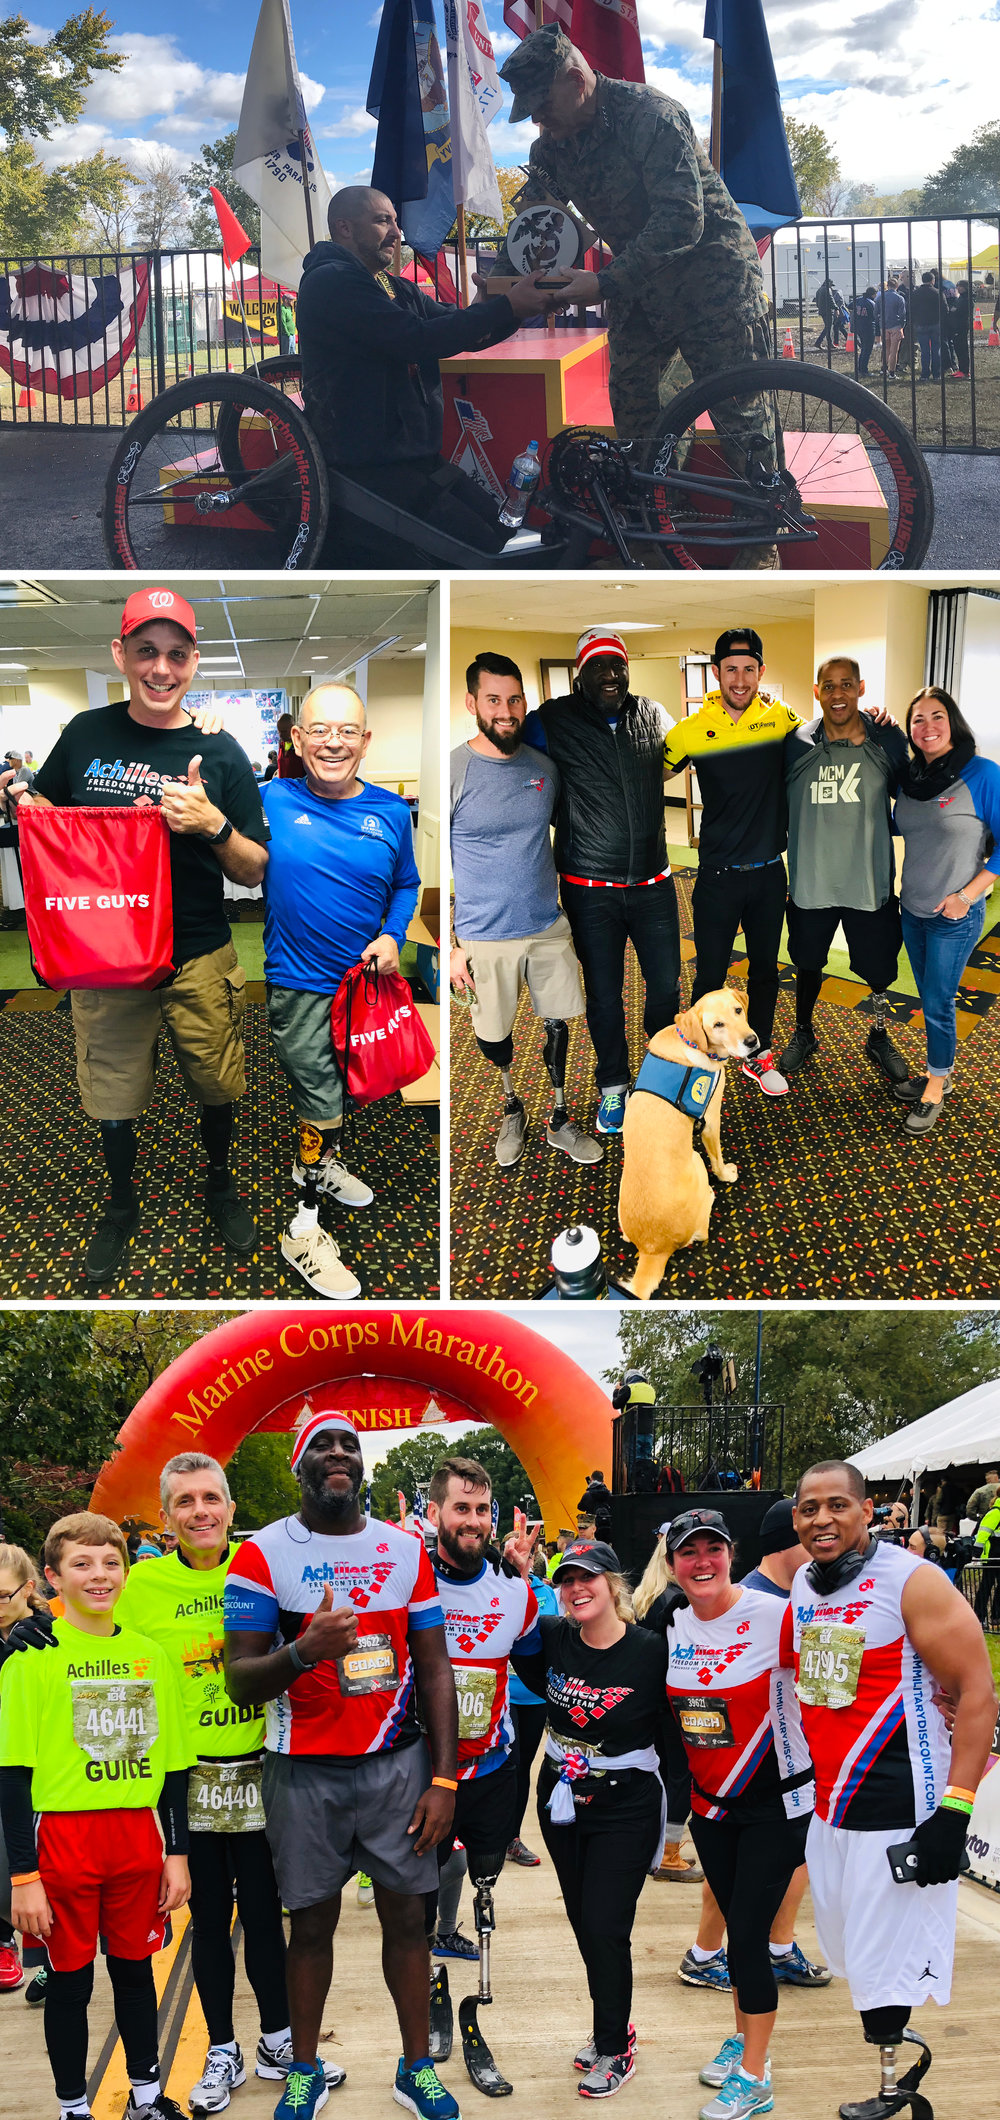 Above: Memorable moments from the Marine Corps Marathon!